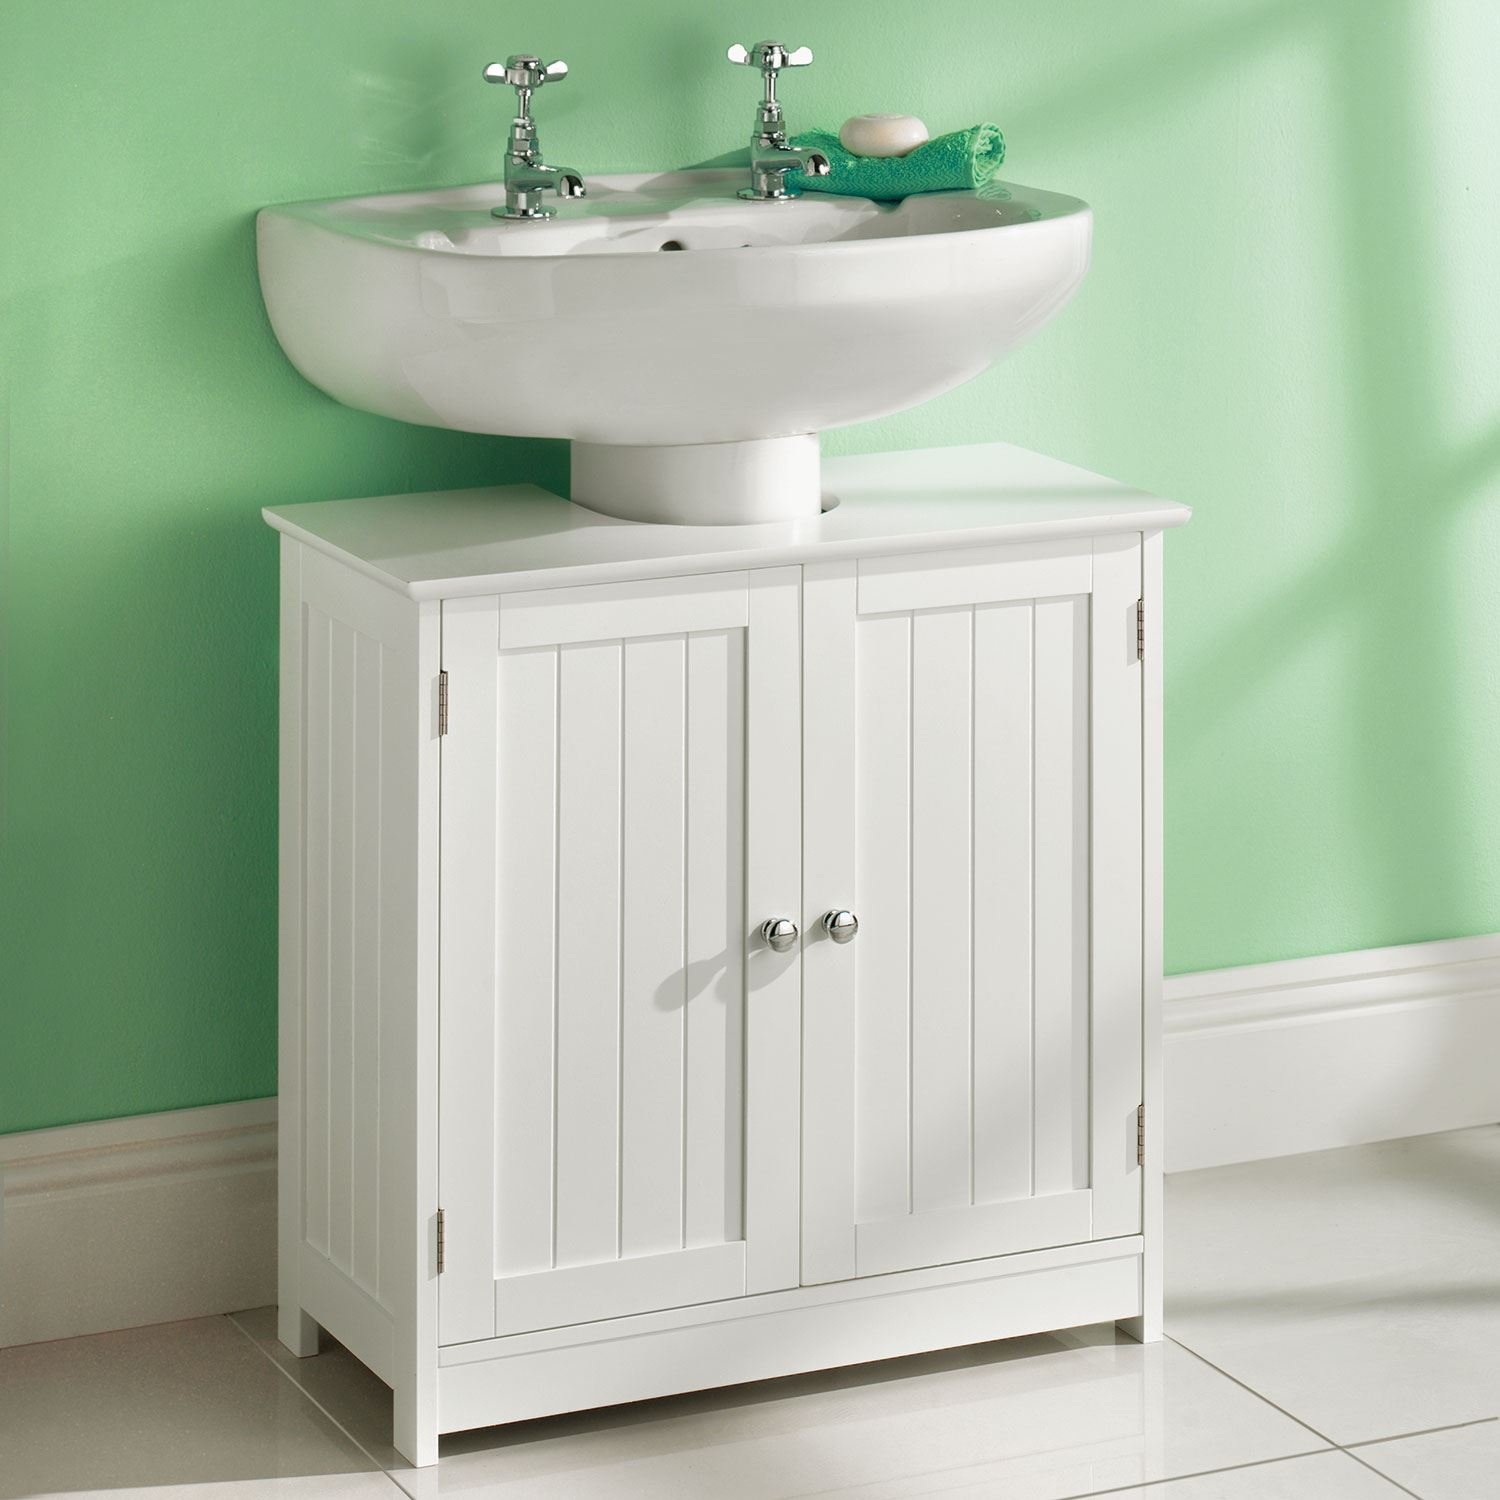 Details About White Under Sink Basin Cabinet Cupboard Bathroom Furniture Storage Unit within measurements 1500 X 1500